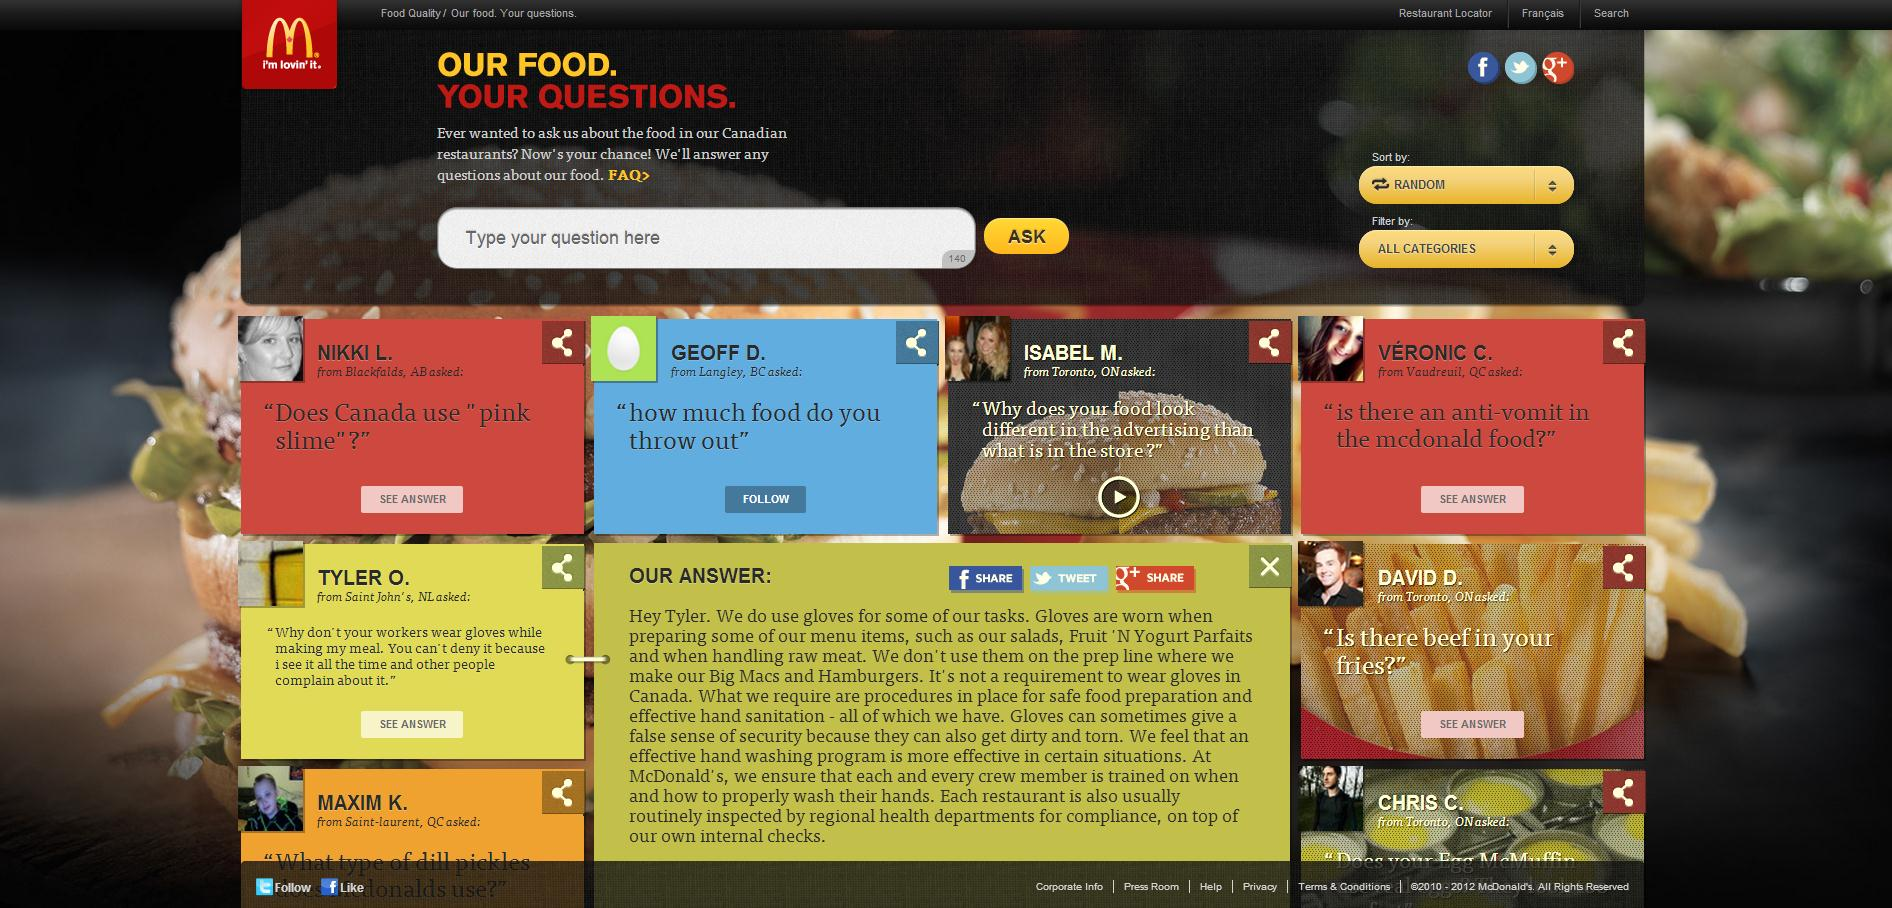 http://cdn2.hubspot.net/hub/32387/file-38413554-jpg/marketing-transparency-mcdonalds-example.jpg